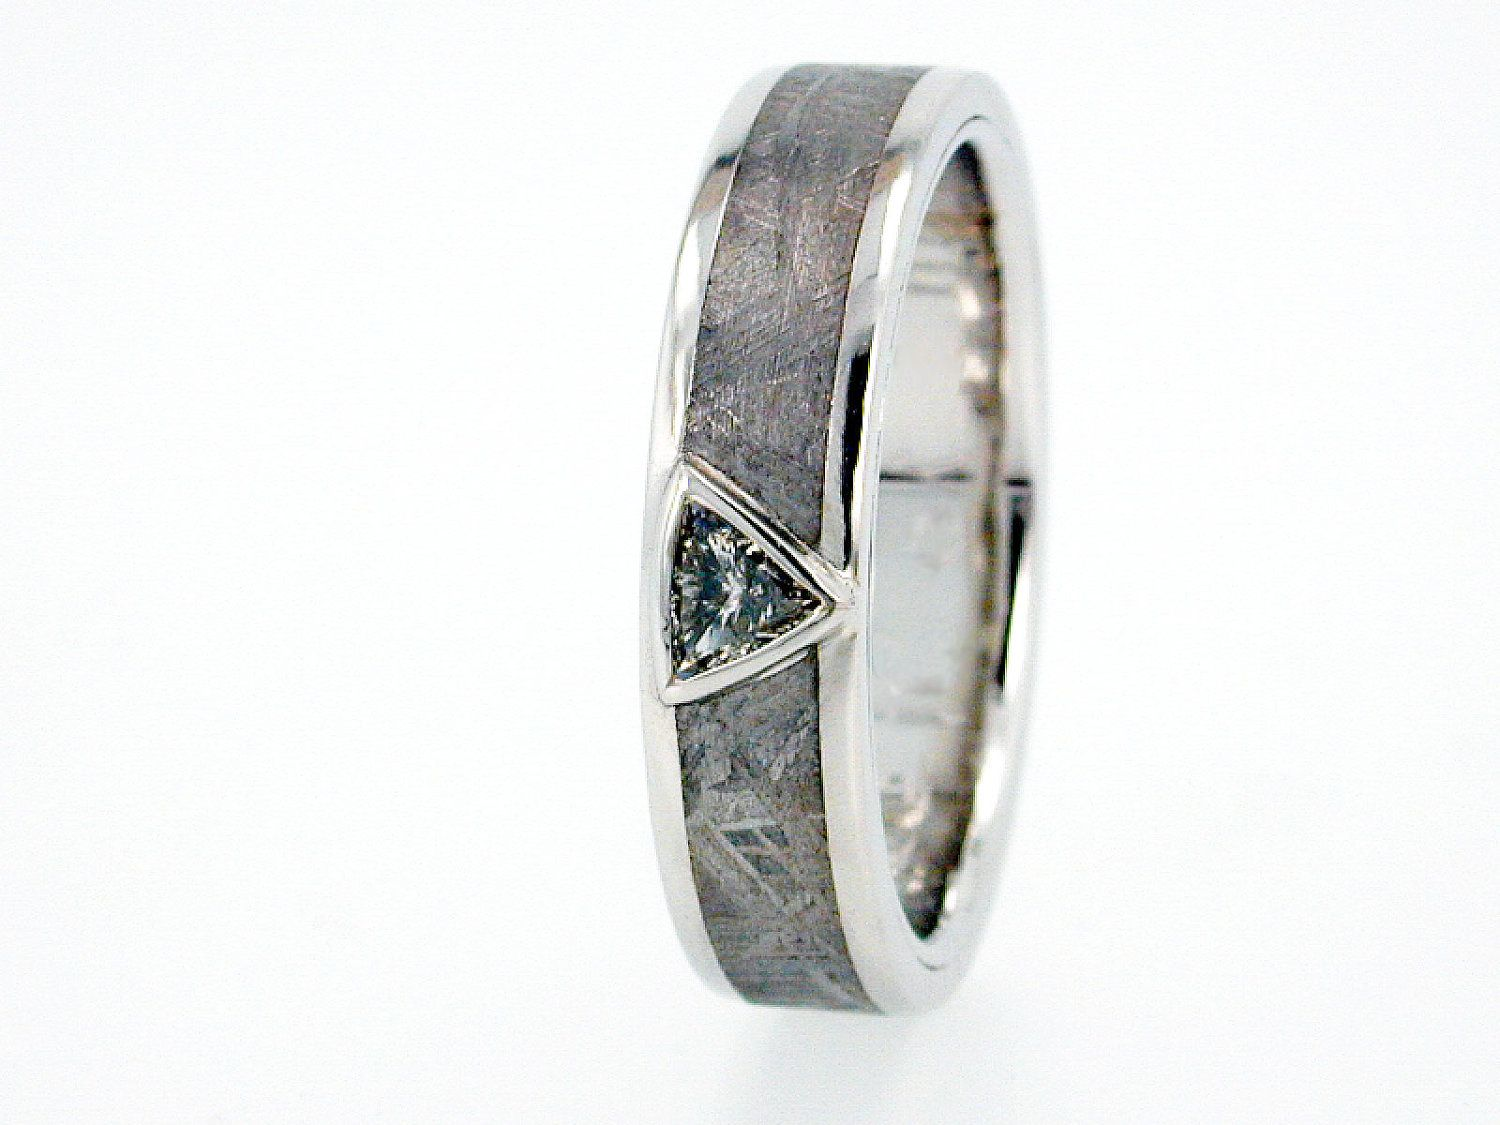 Trillion Cut Diamond Engagement Ring Or Meteorite Wedding Ring For Men,  Platinum Wedding Band